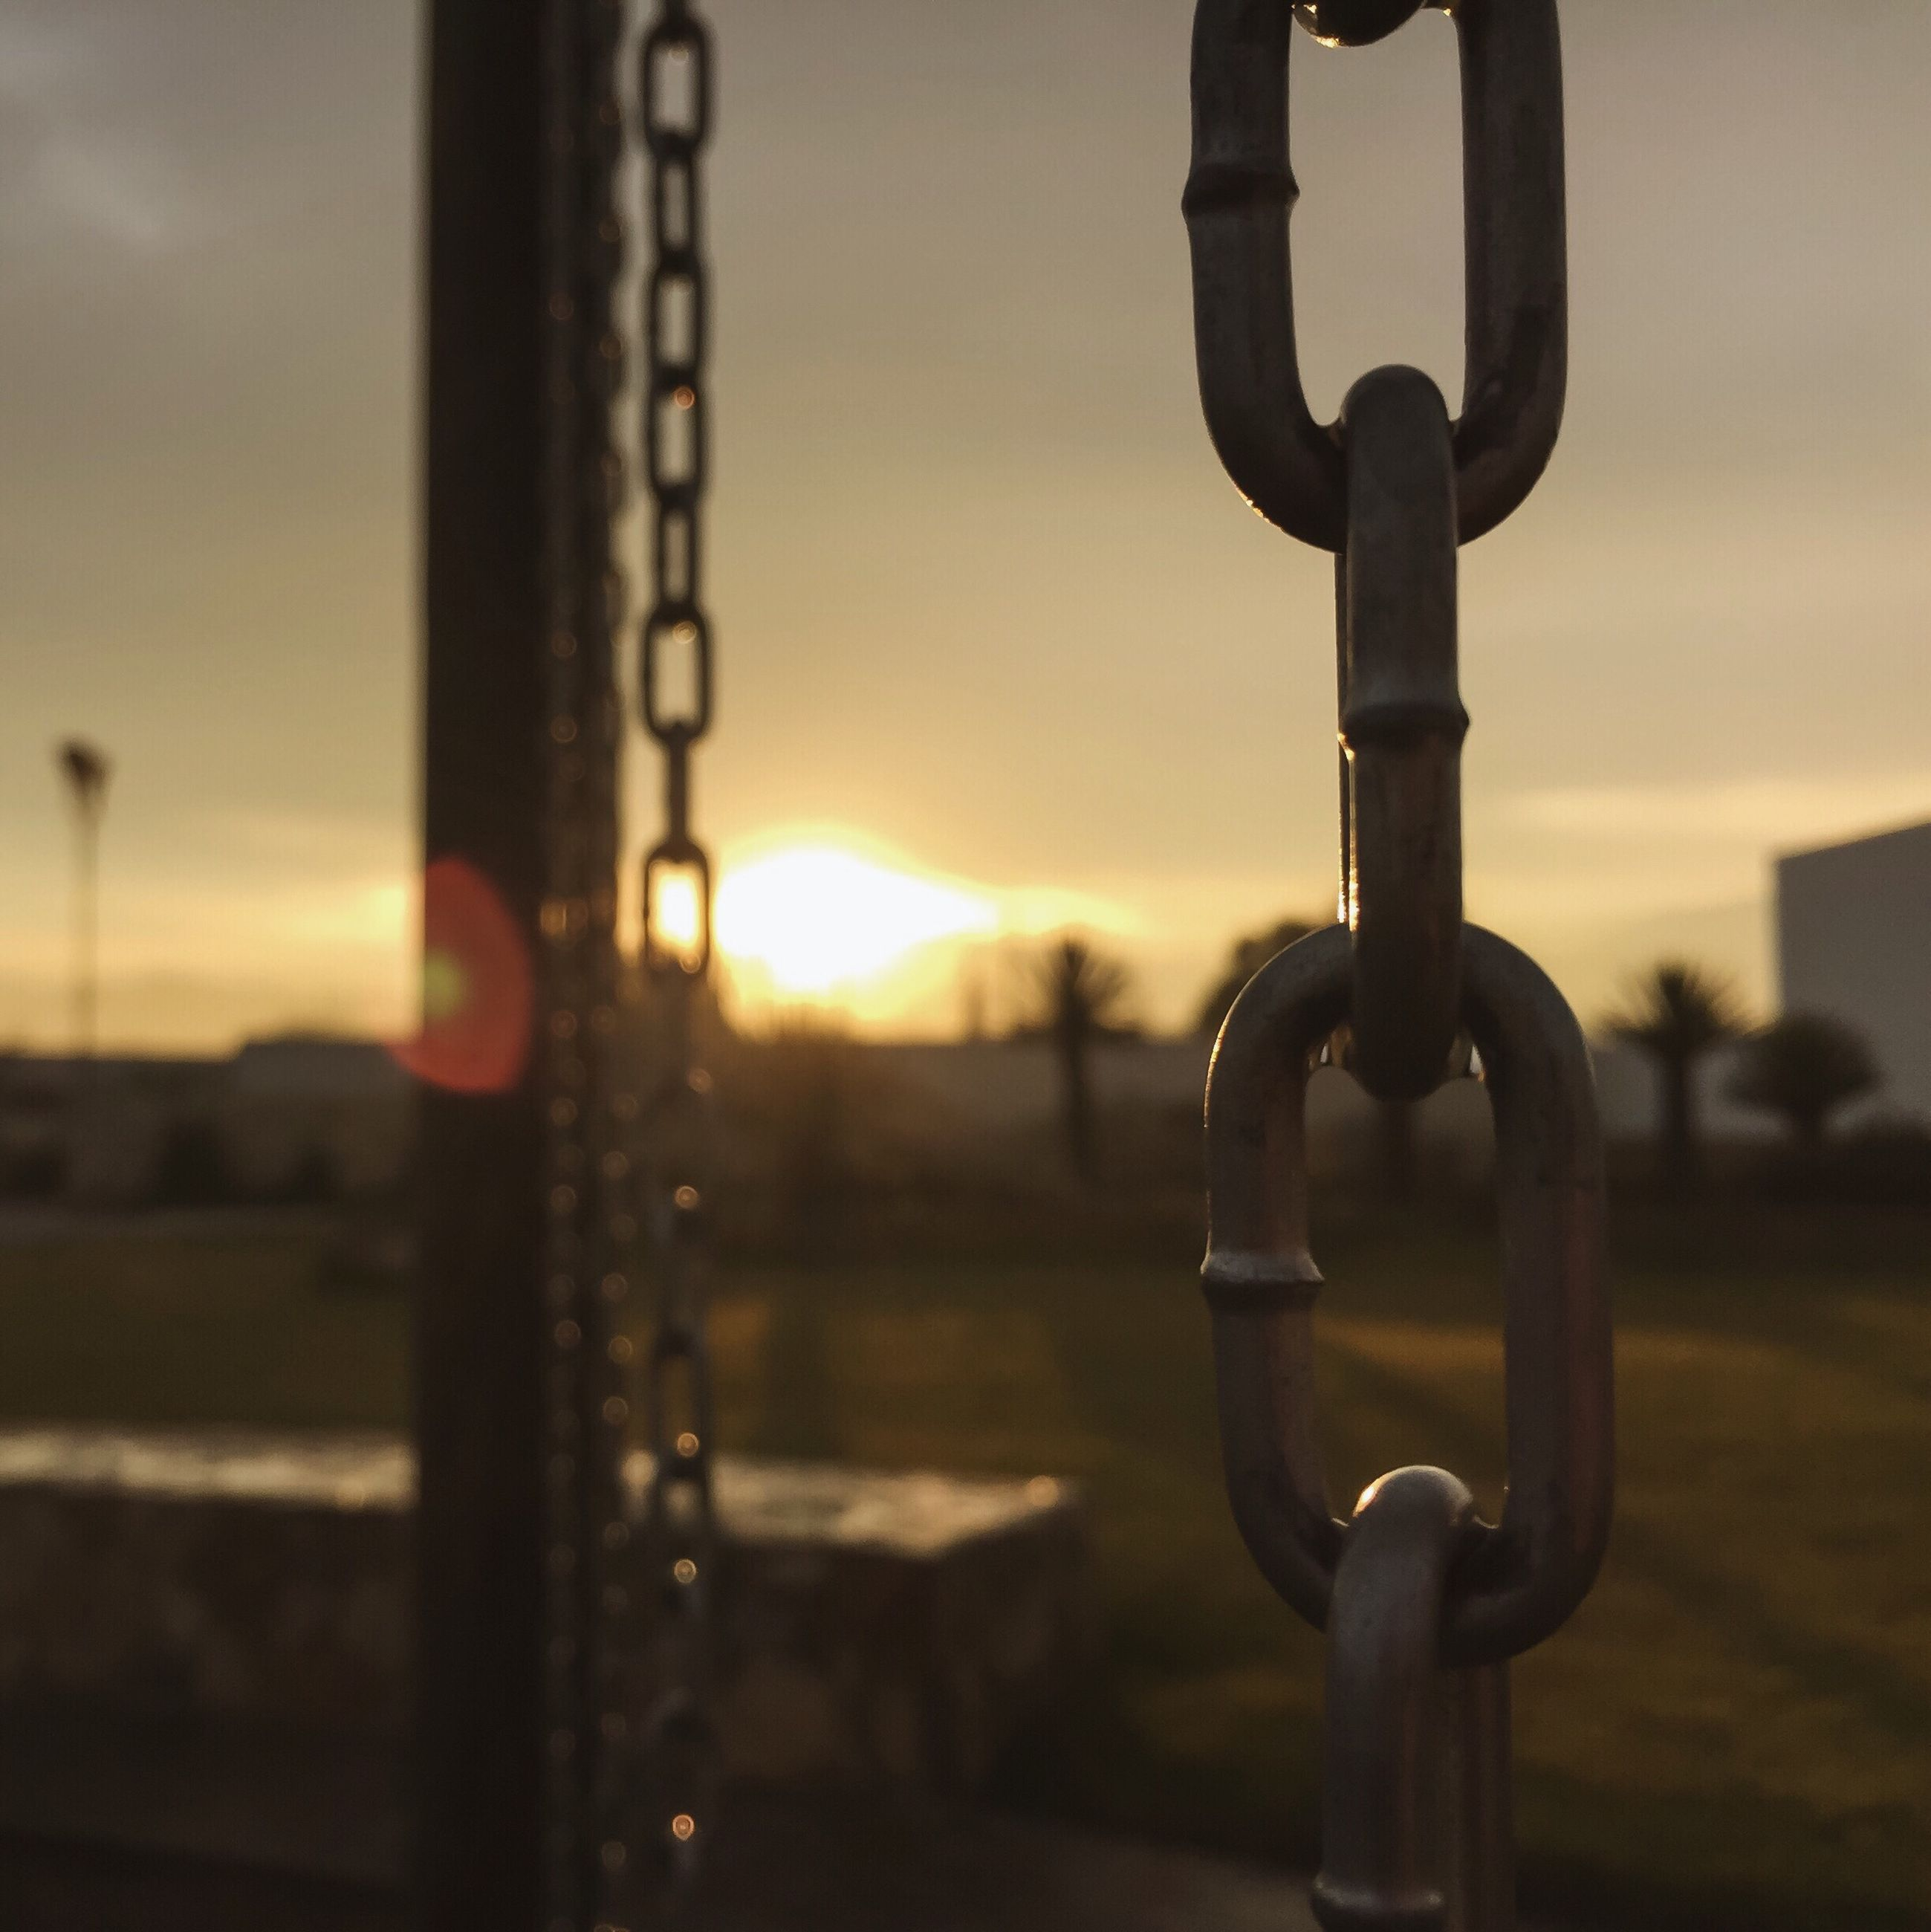 metal, focus on foreground, safety, protection, metallic, security, close-up, padlock, chain, fence, rusty, lock, strength, chainlink fence, sunset, no people, railing, connection, gate, sky